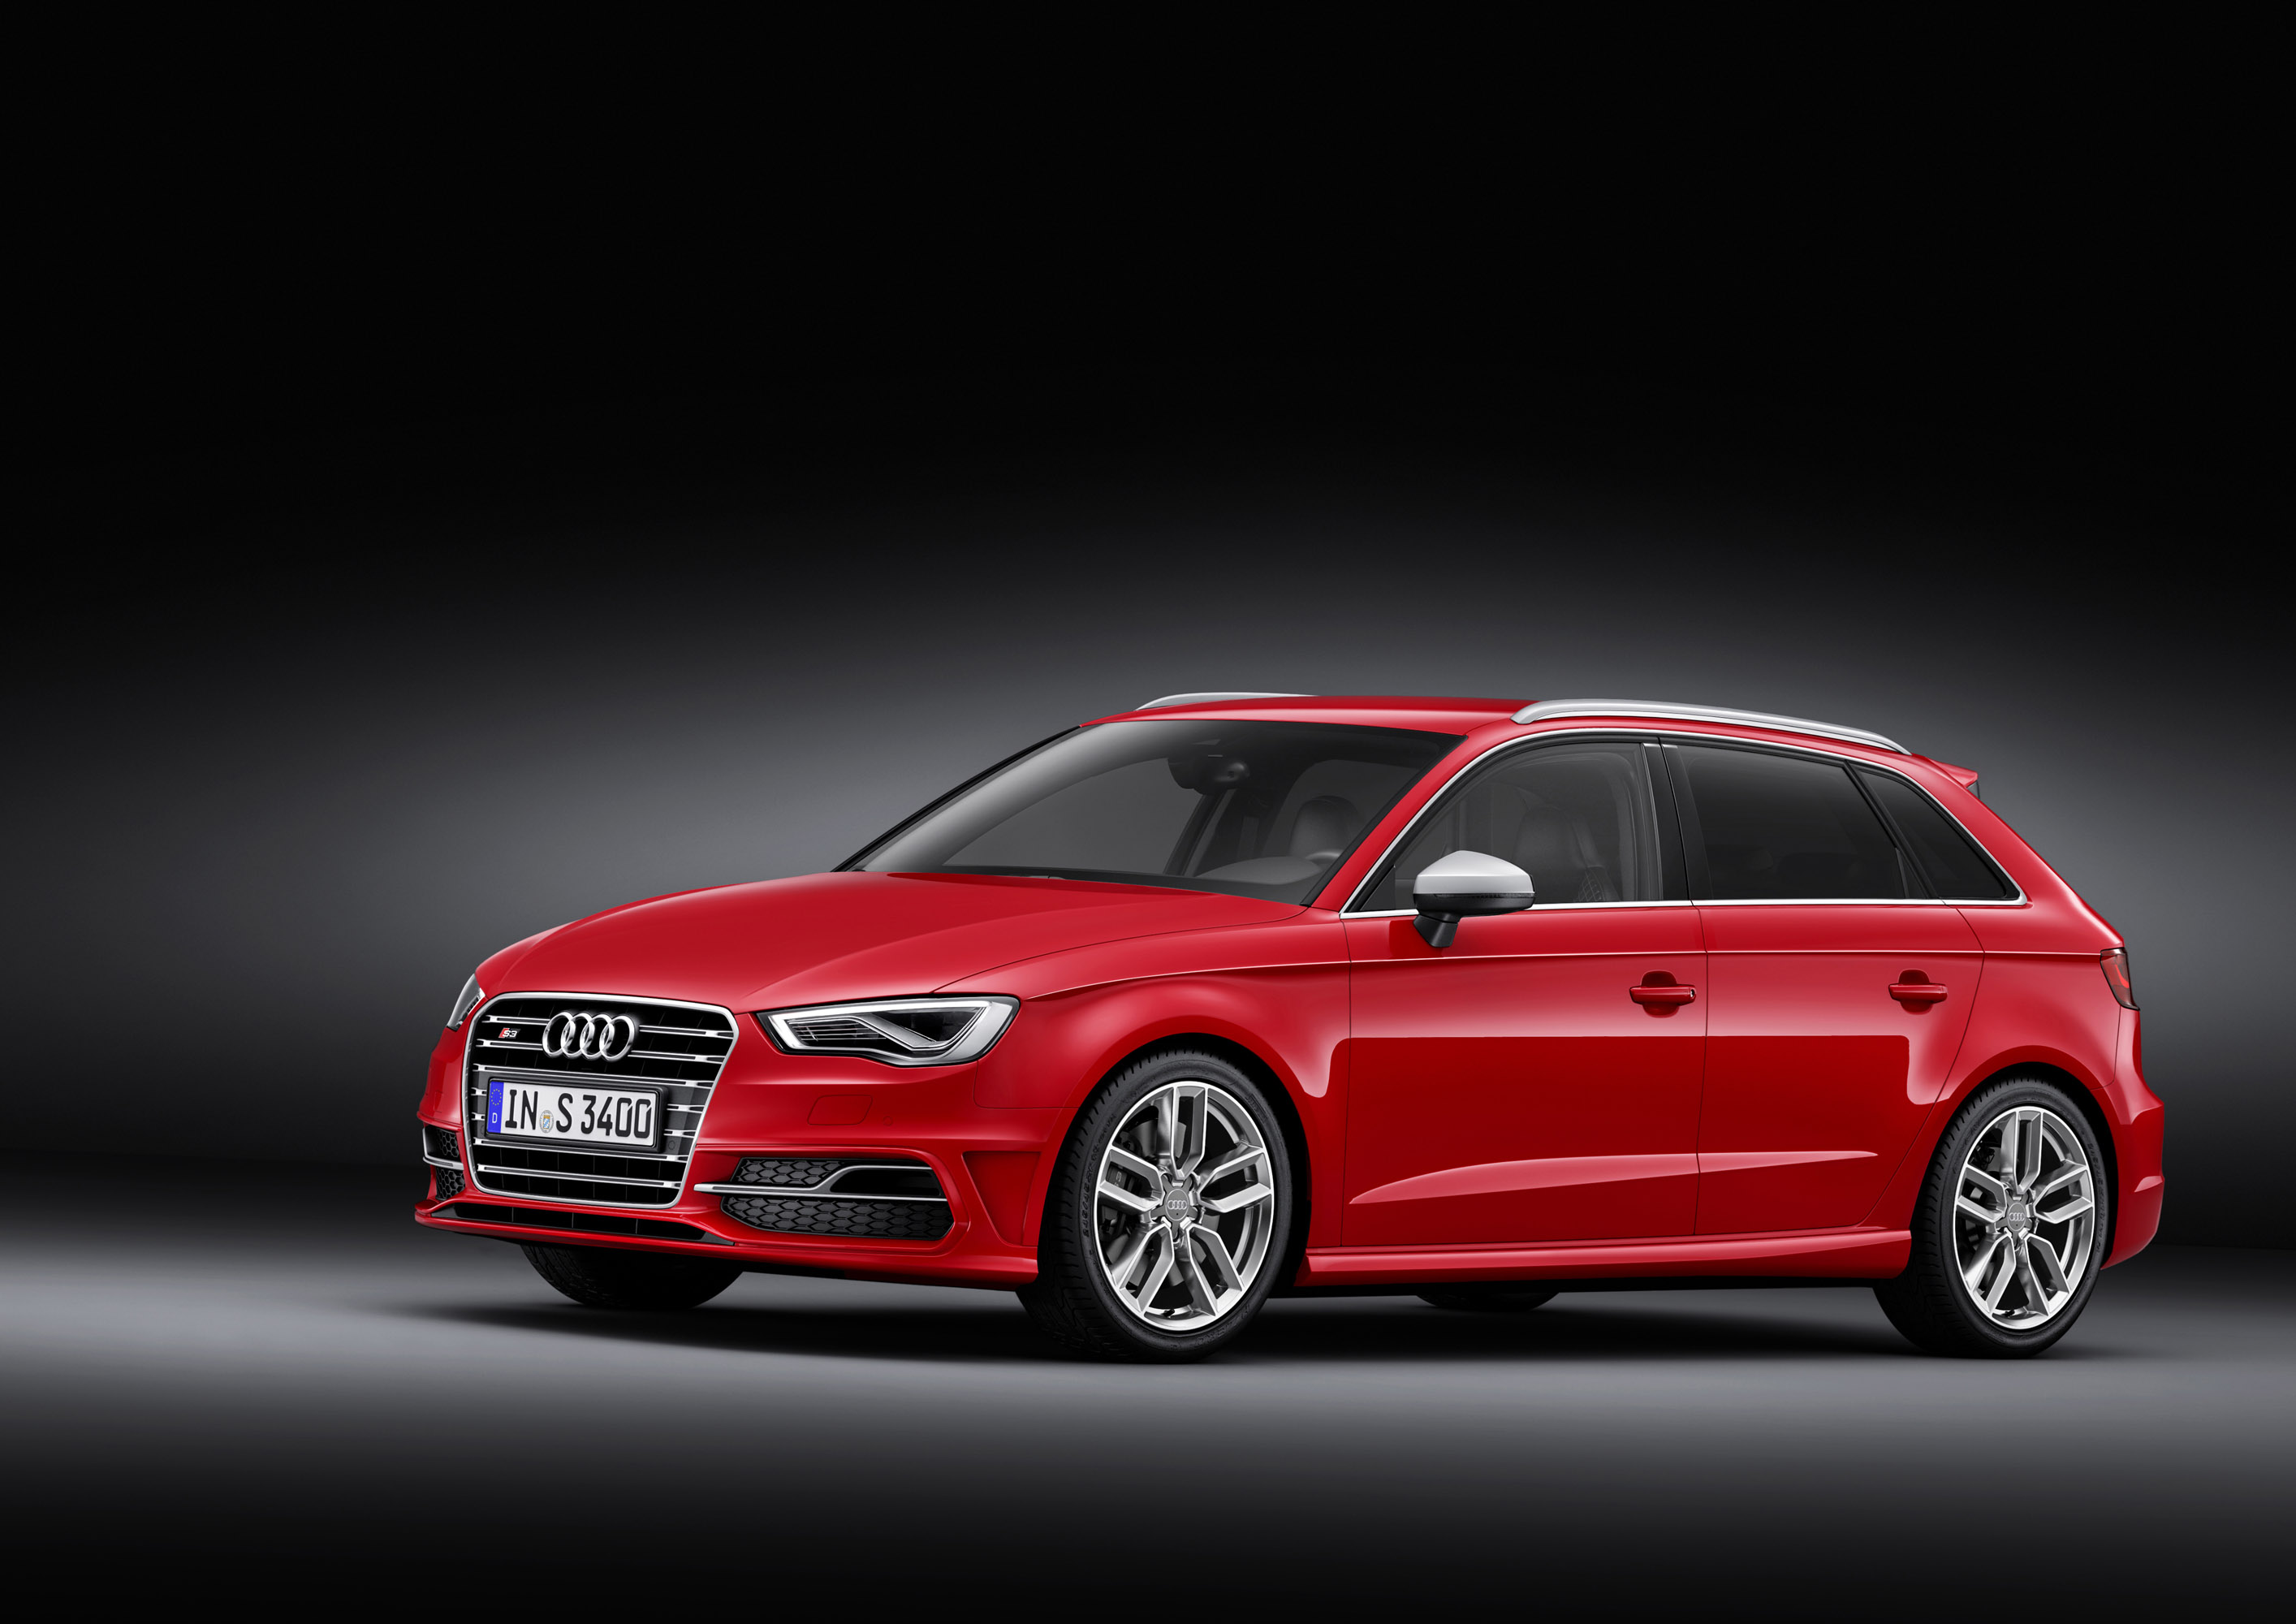 2014 audi s3 sportback revealed. Black Bedroom Furniture Sets. Home Design Ideas